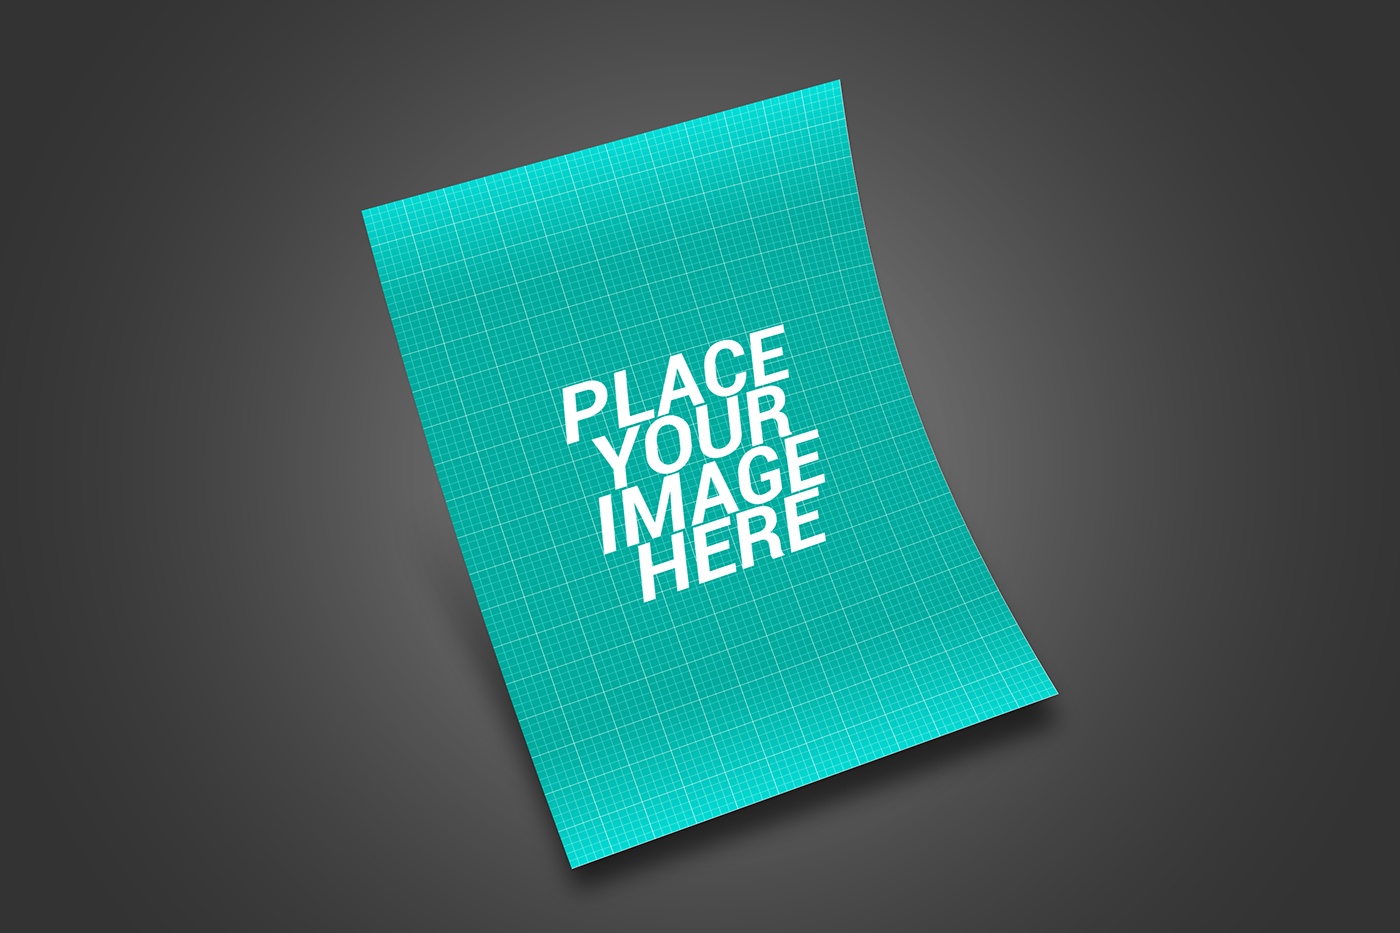 free psd files of flyer mockups